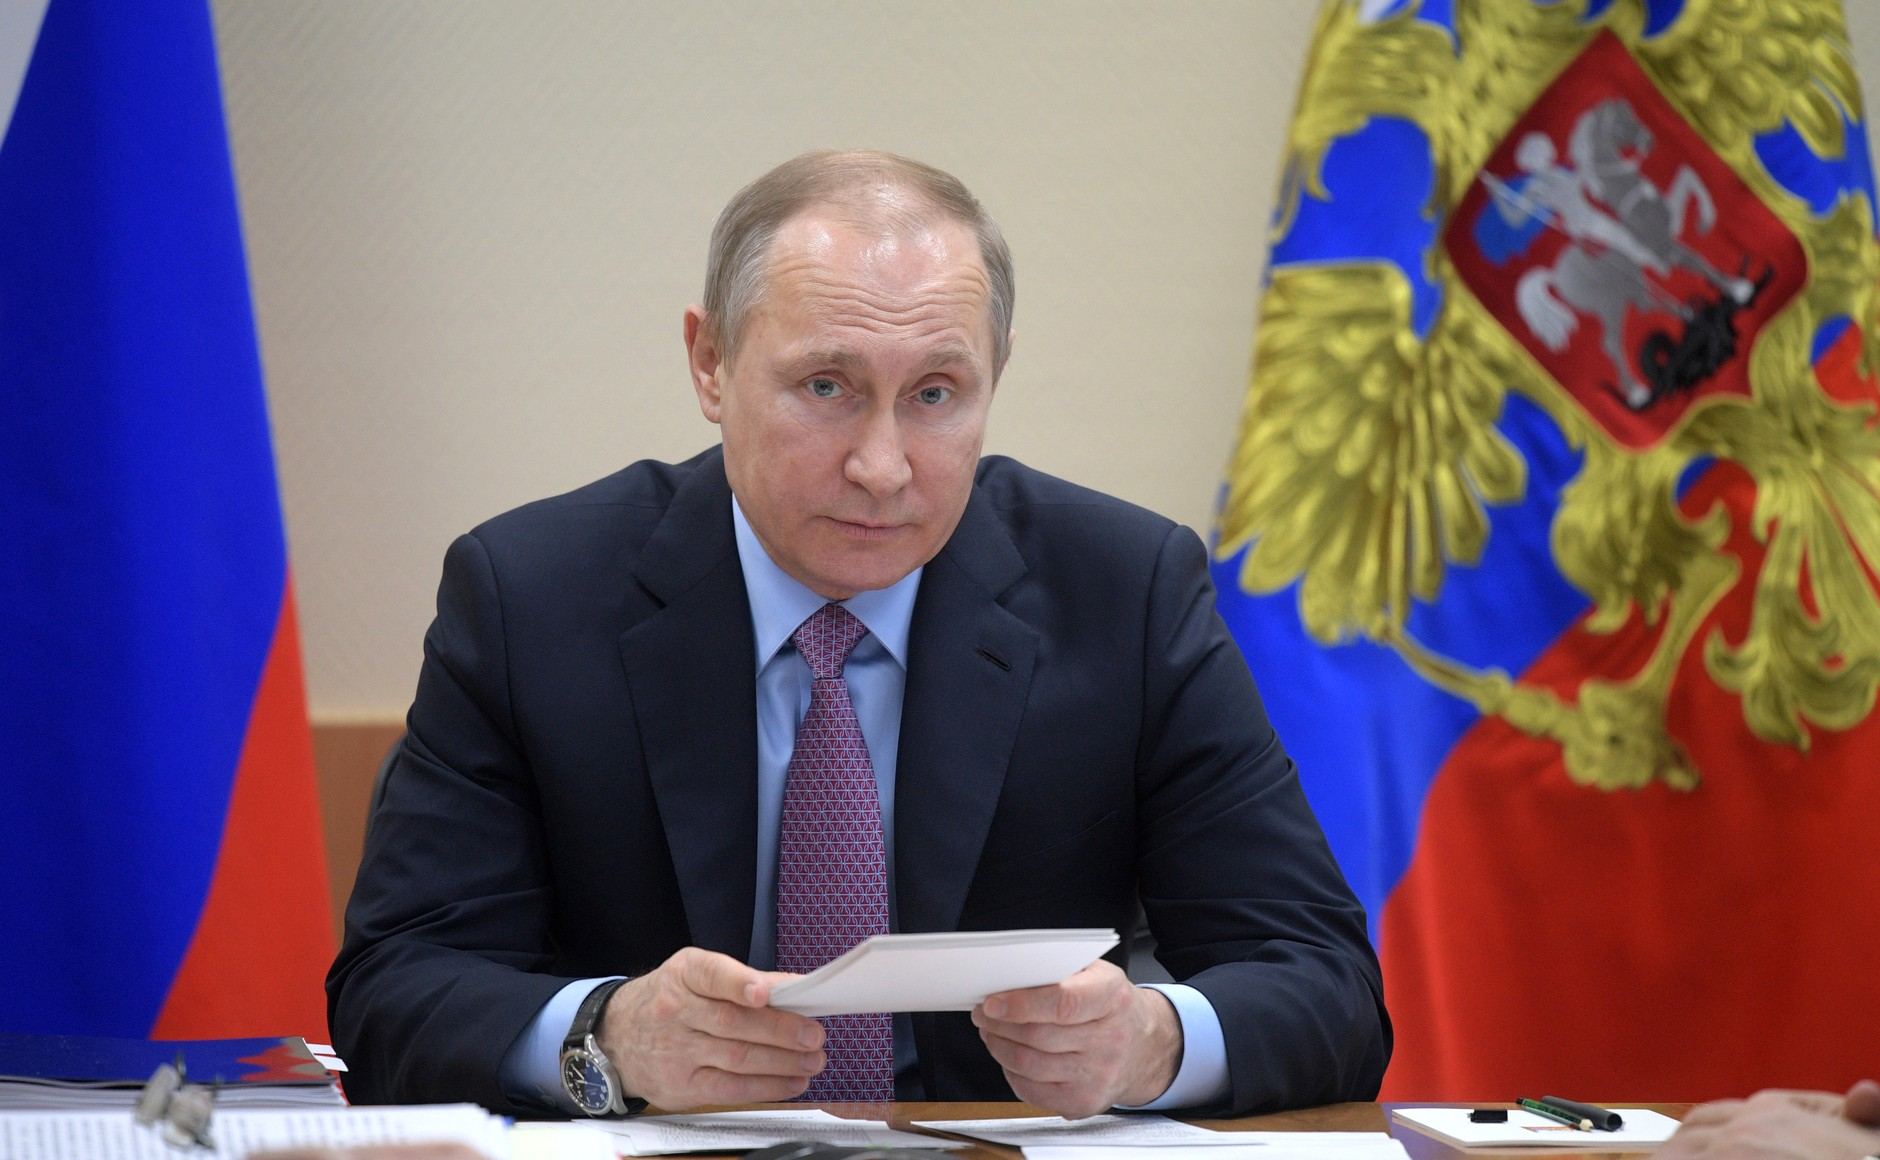 President Vladimir Putin at a meeting of the Military Industrial Commission, April 25, 2017.